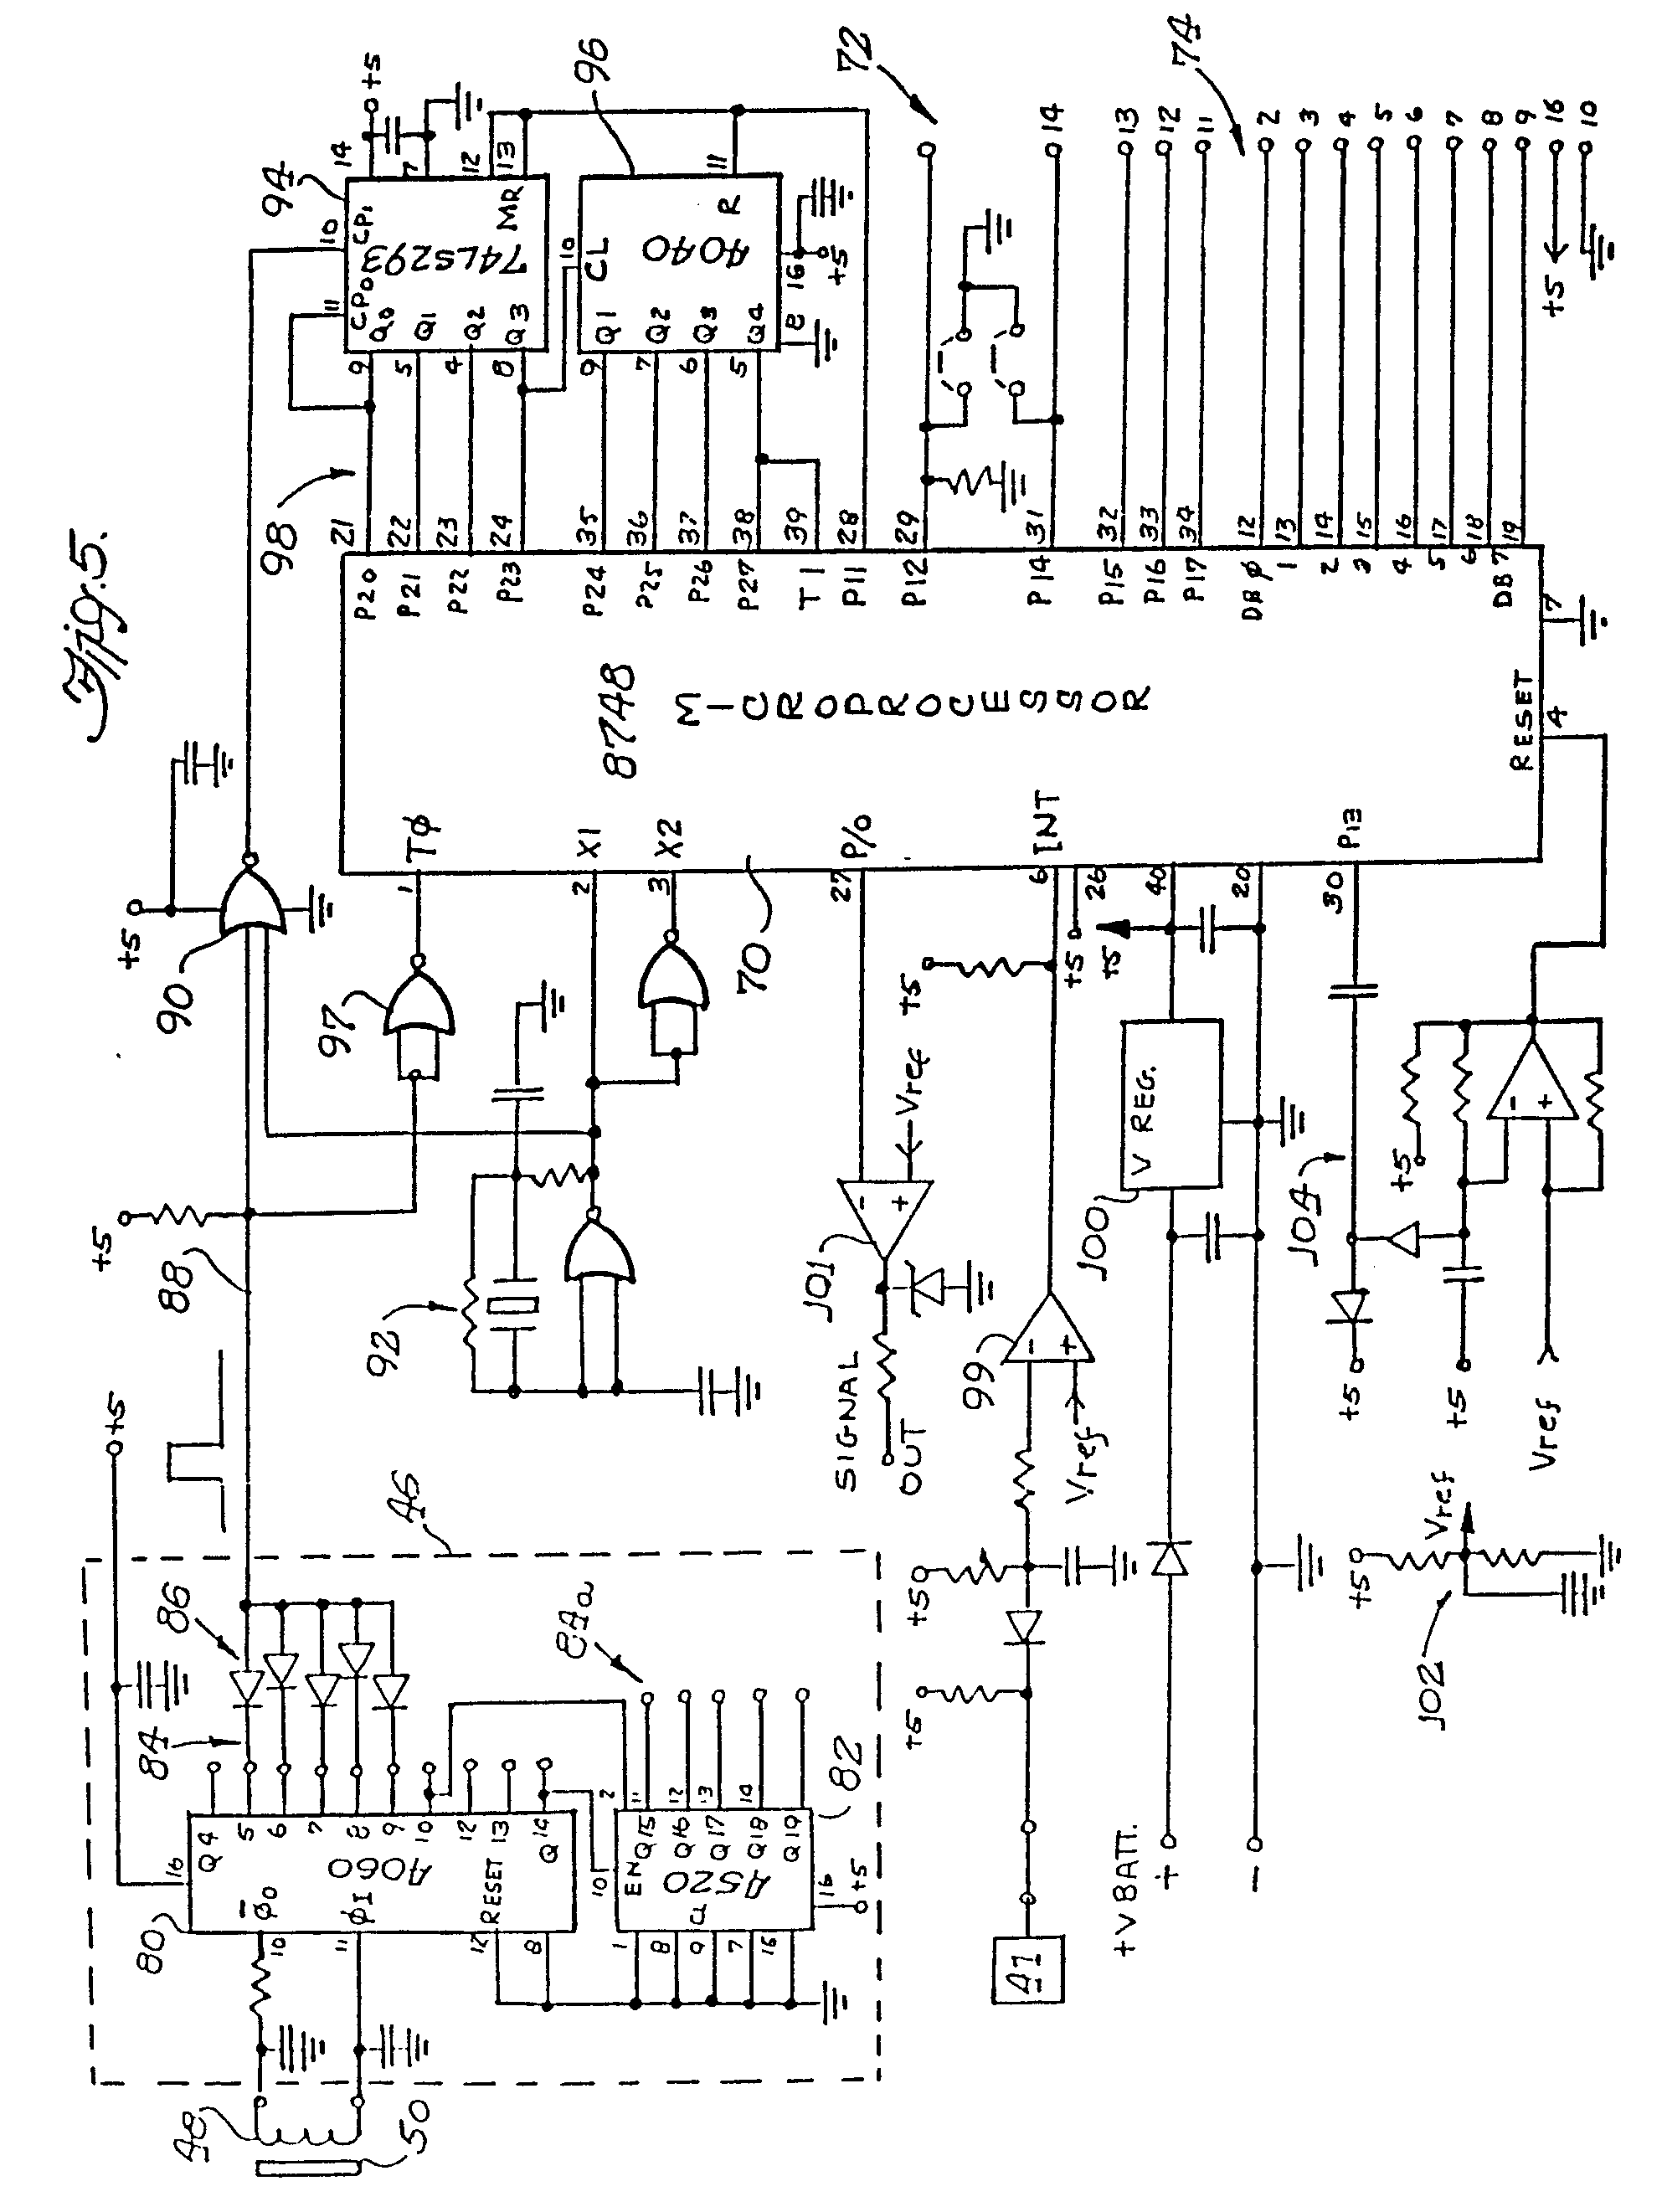 12 volt wiring diagram for 8n ford tractor